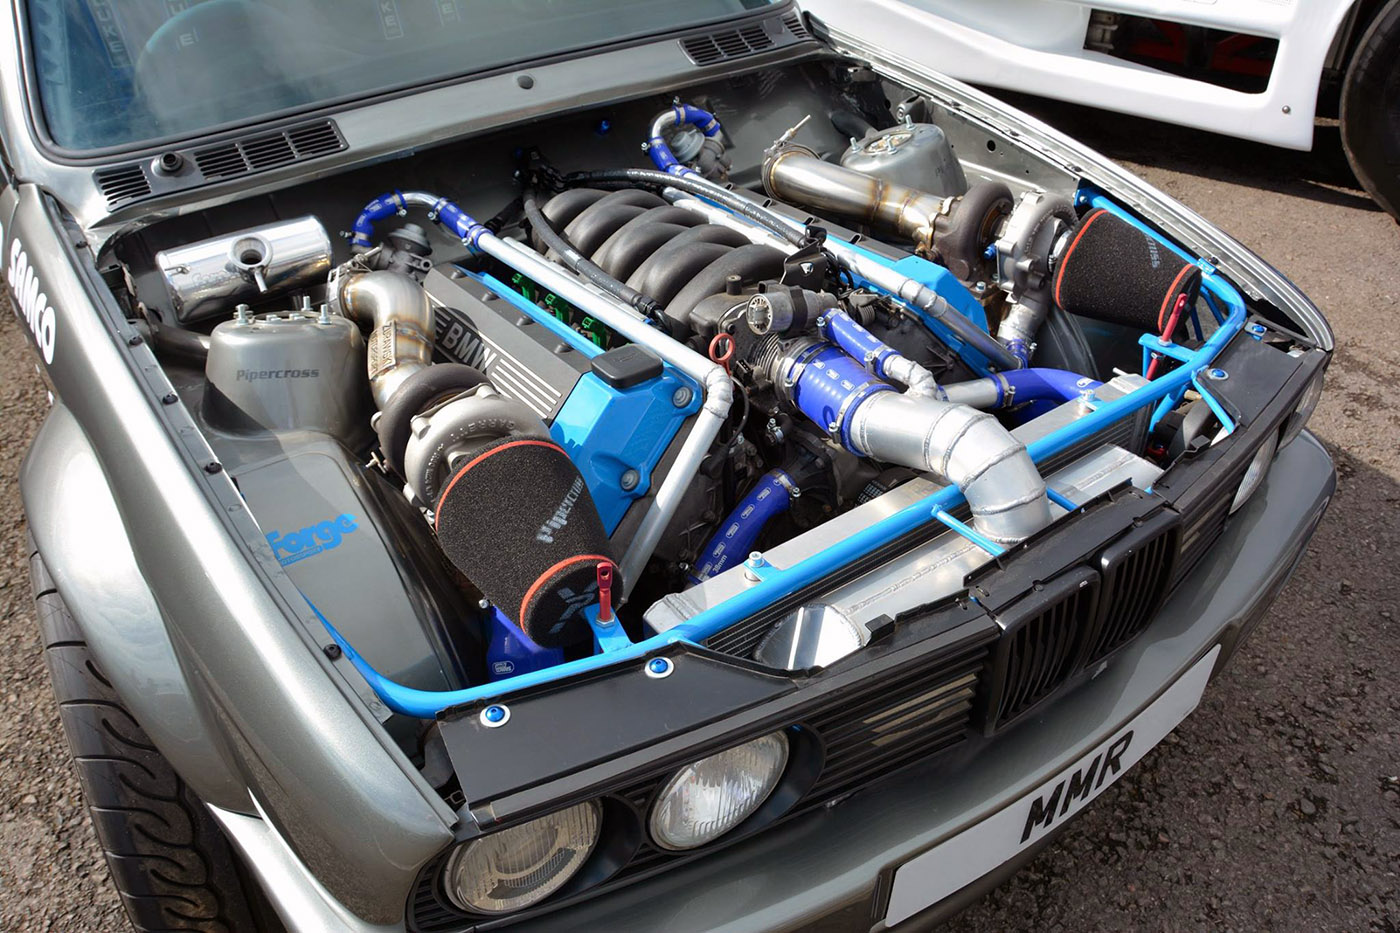 BMW E30 with a Twin-turbo M60 – Engine Swap Depot